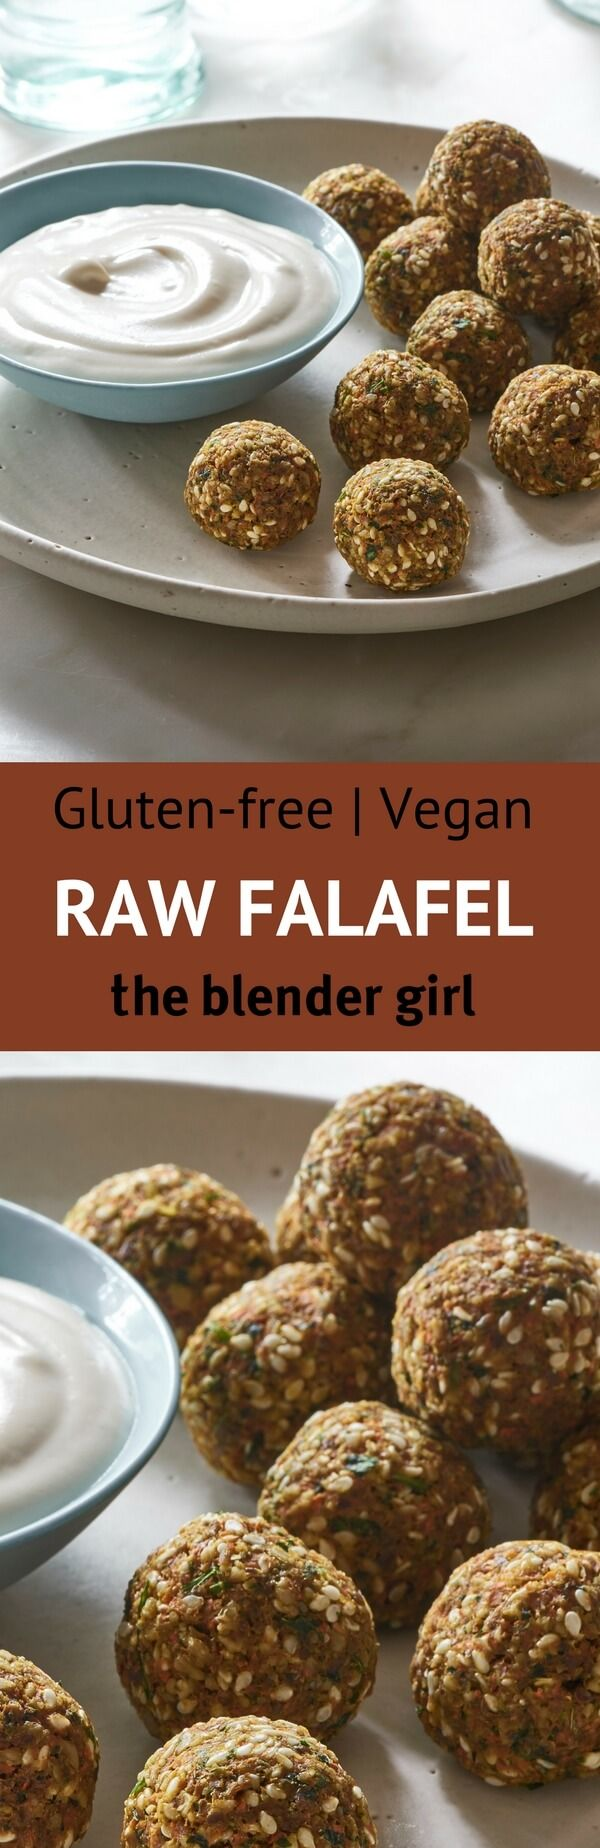 Are you looking for delicious raw falafel recipes? This fabulous raw vegan aioli recipe from Uncooking 101 is fantastic.